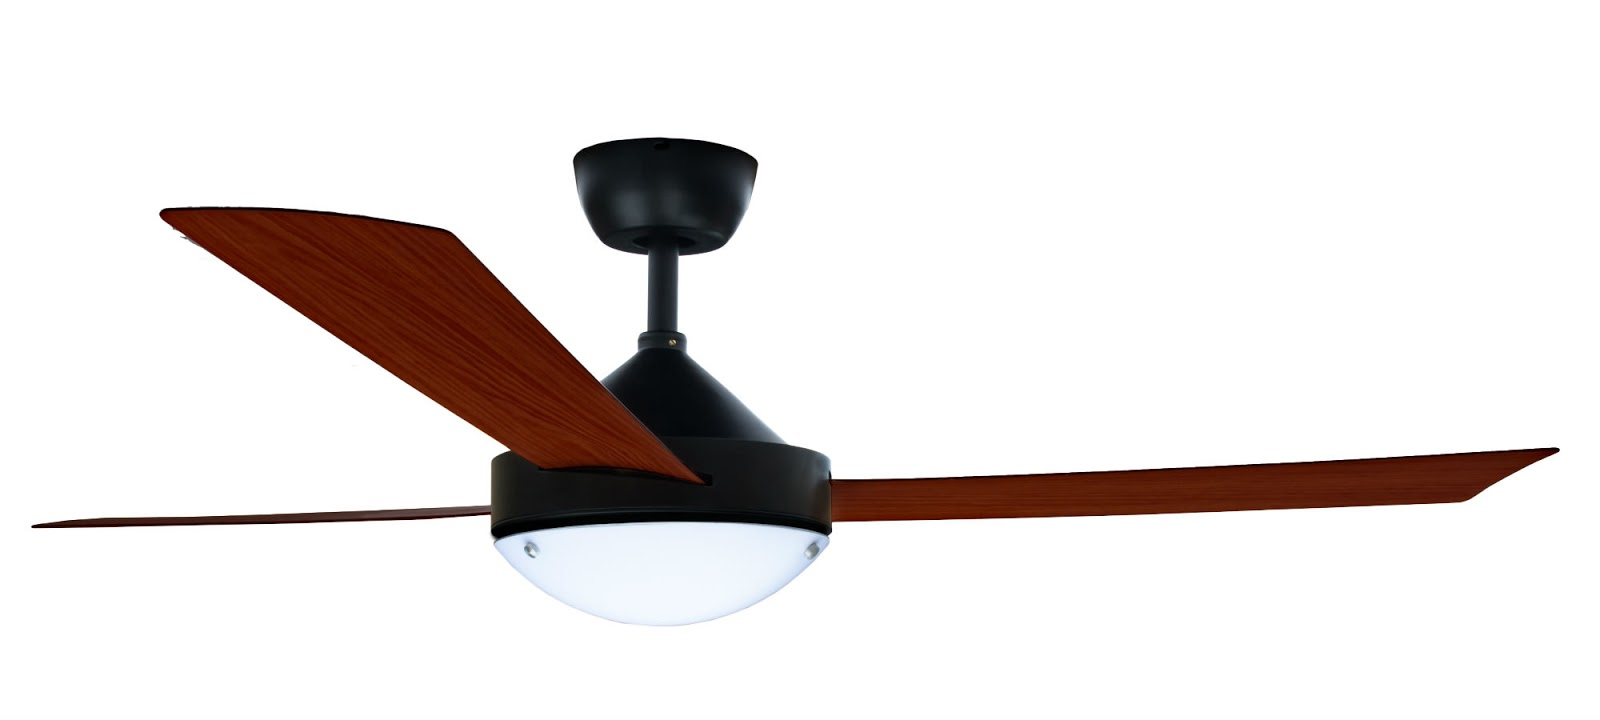 A Good Looking Outdoor Ceiling Fan Can Enhance The Look Of Place